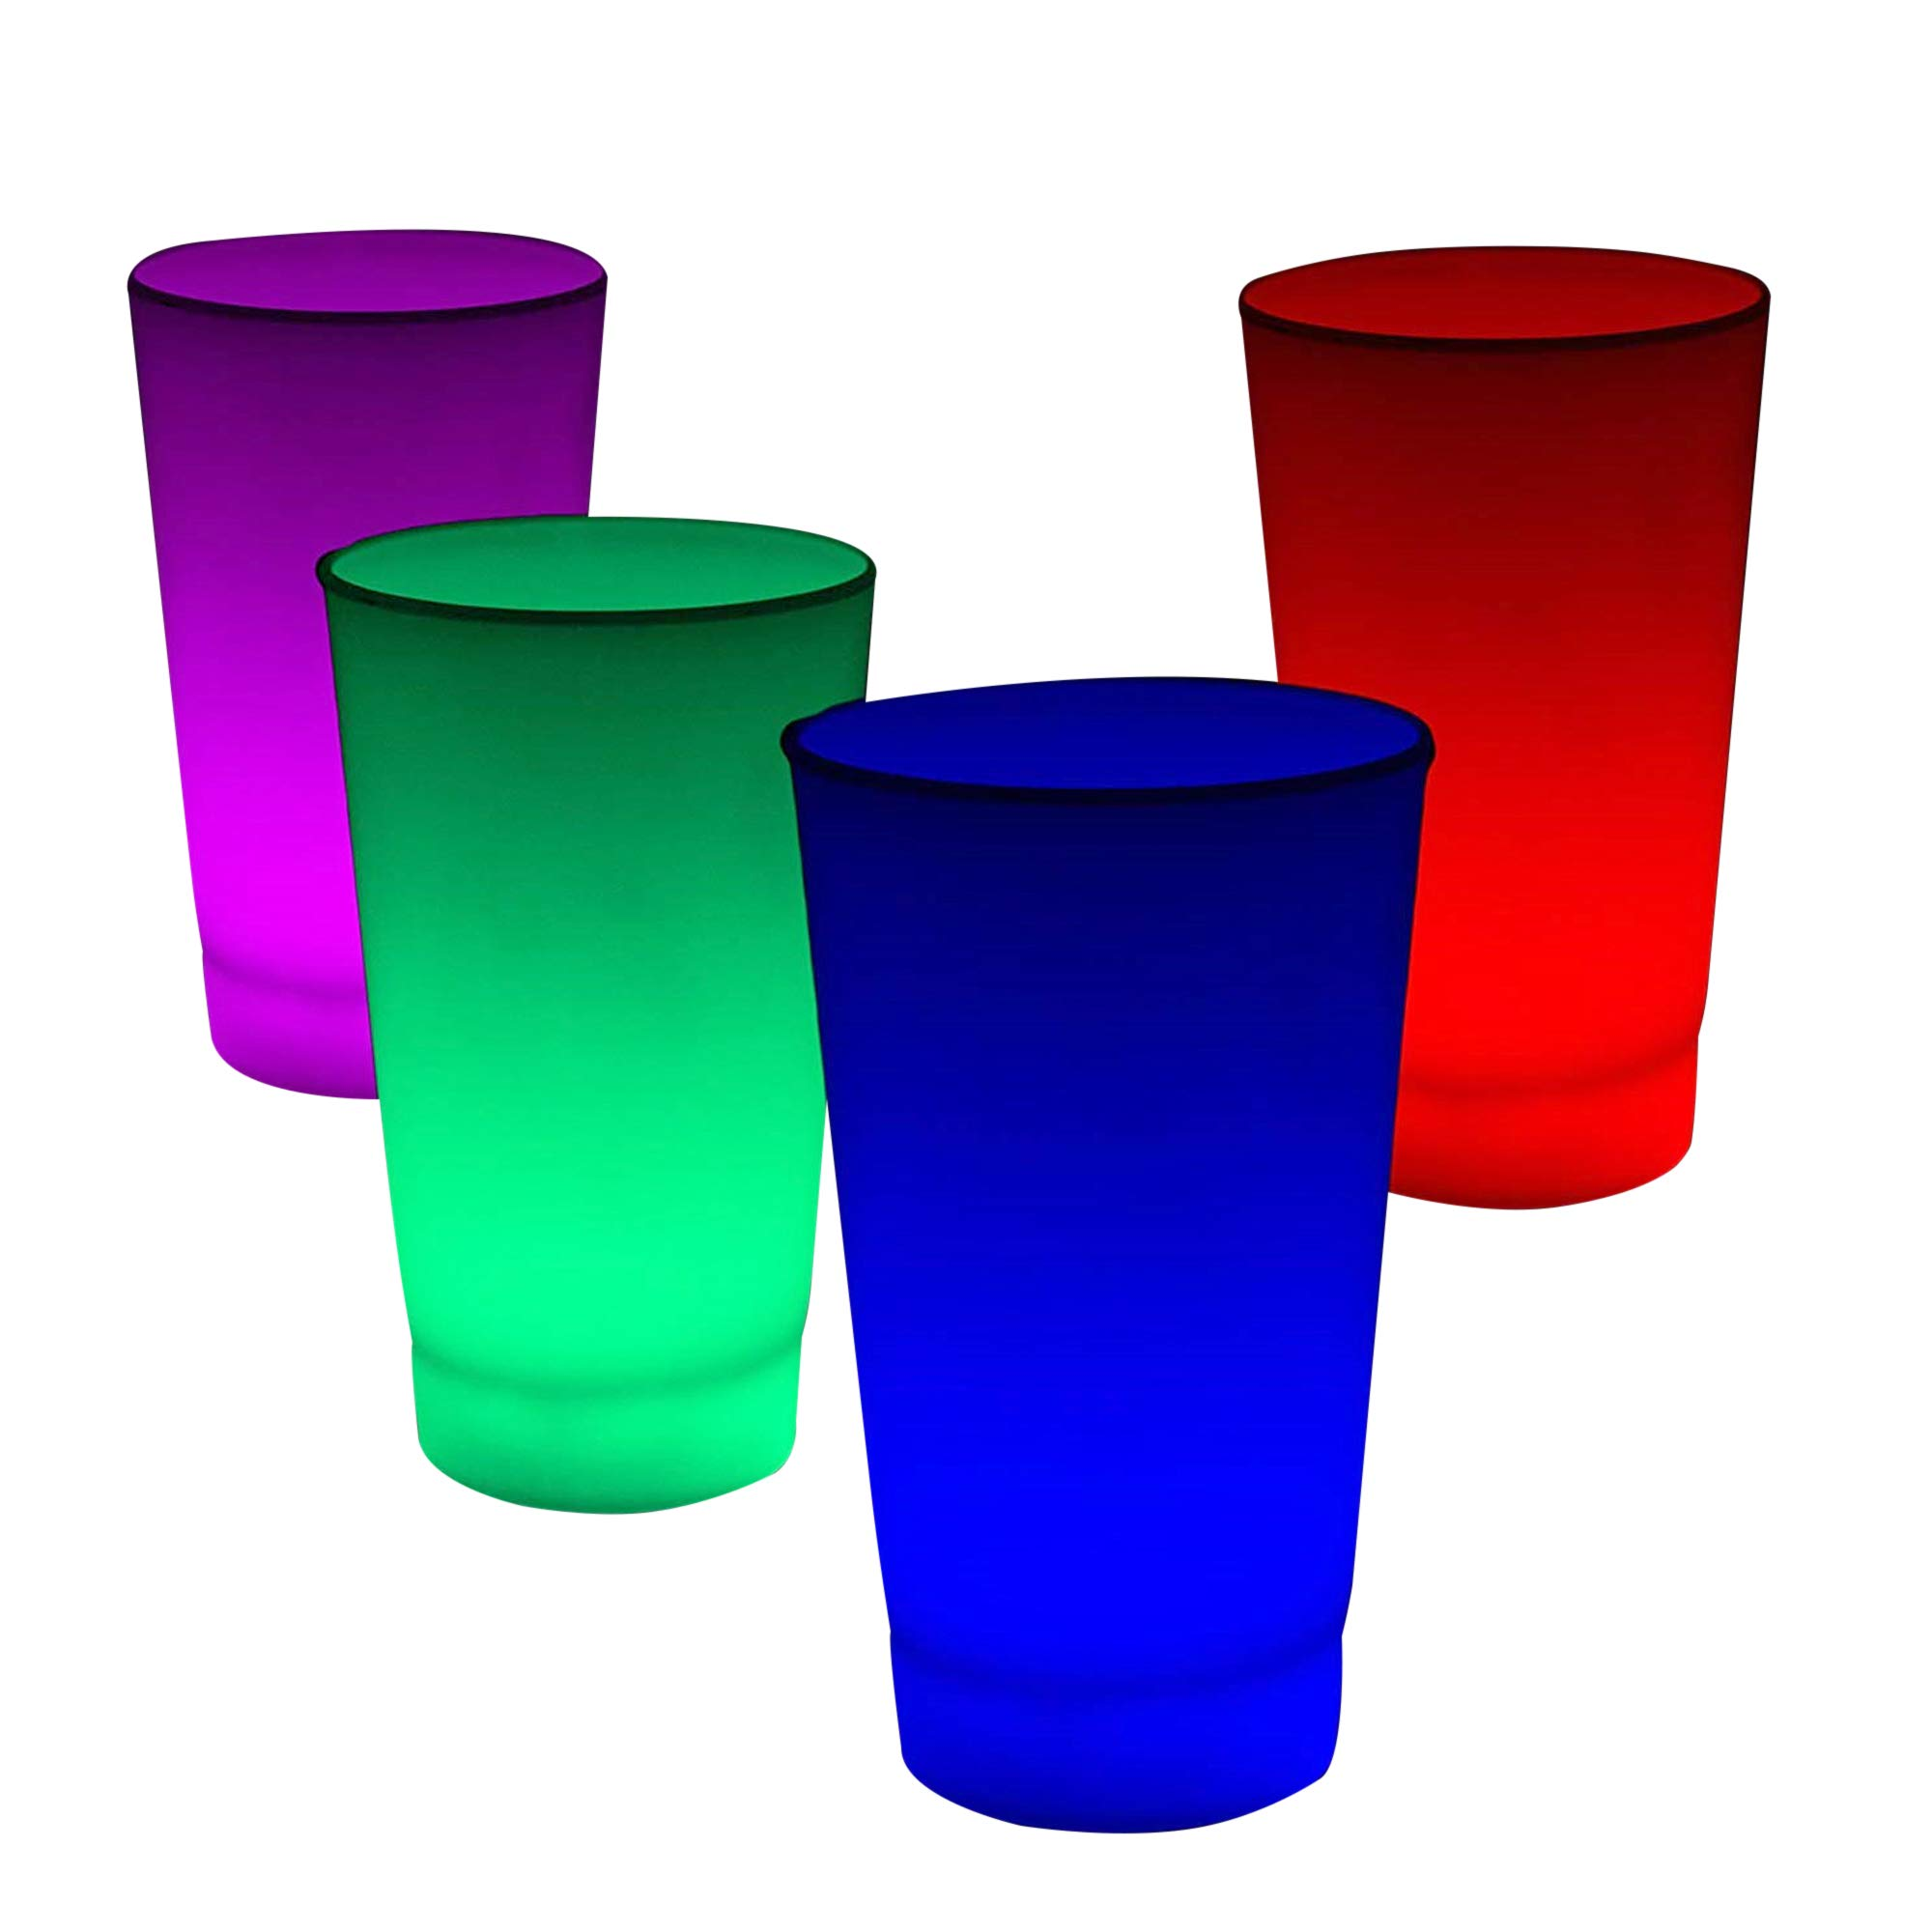 6 Pack - Multicolor Glow in The Dark LED Light Up Cup for Parties